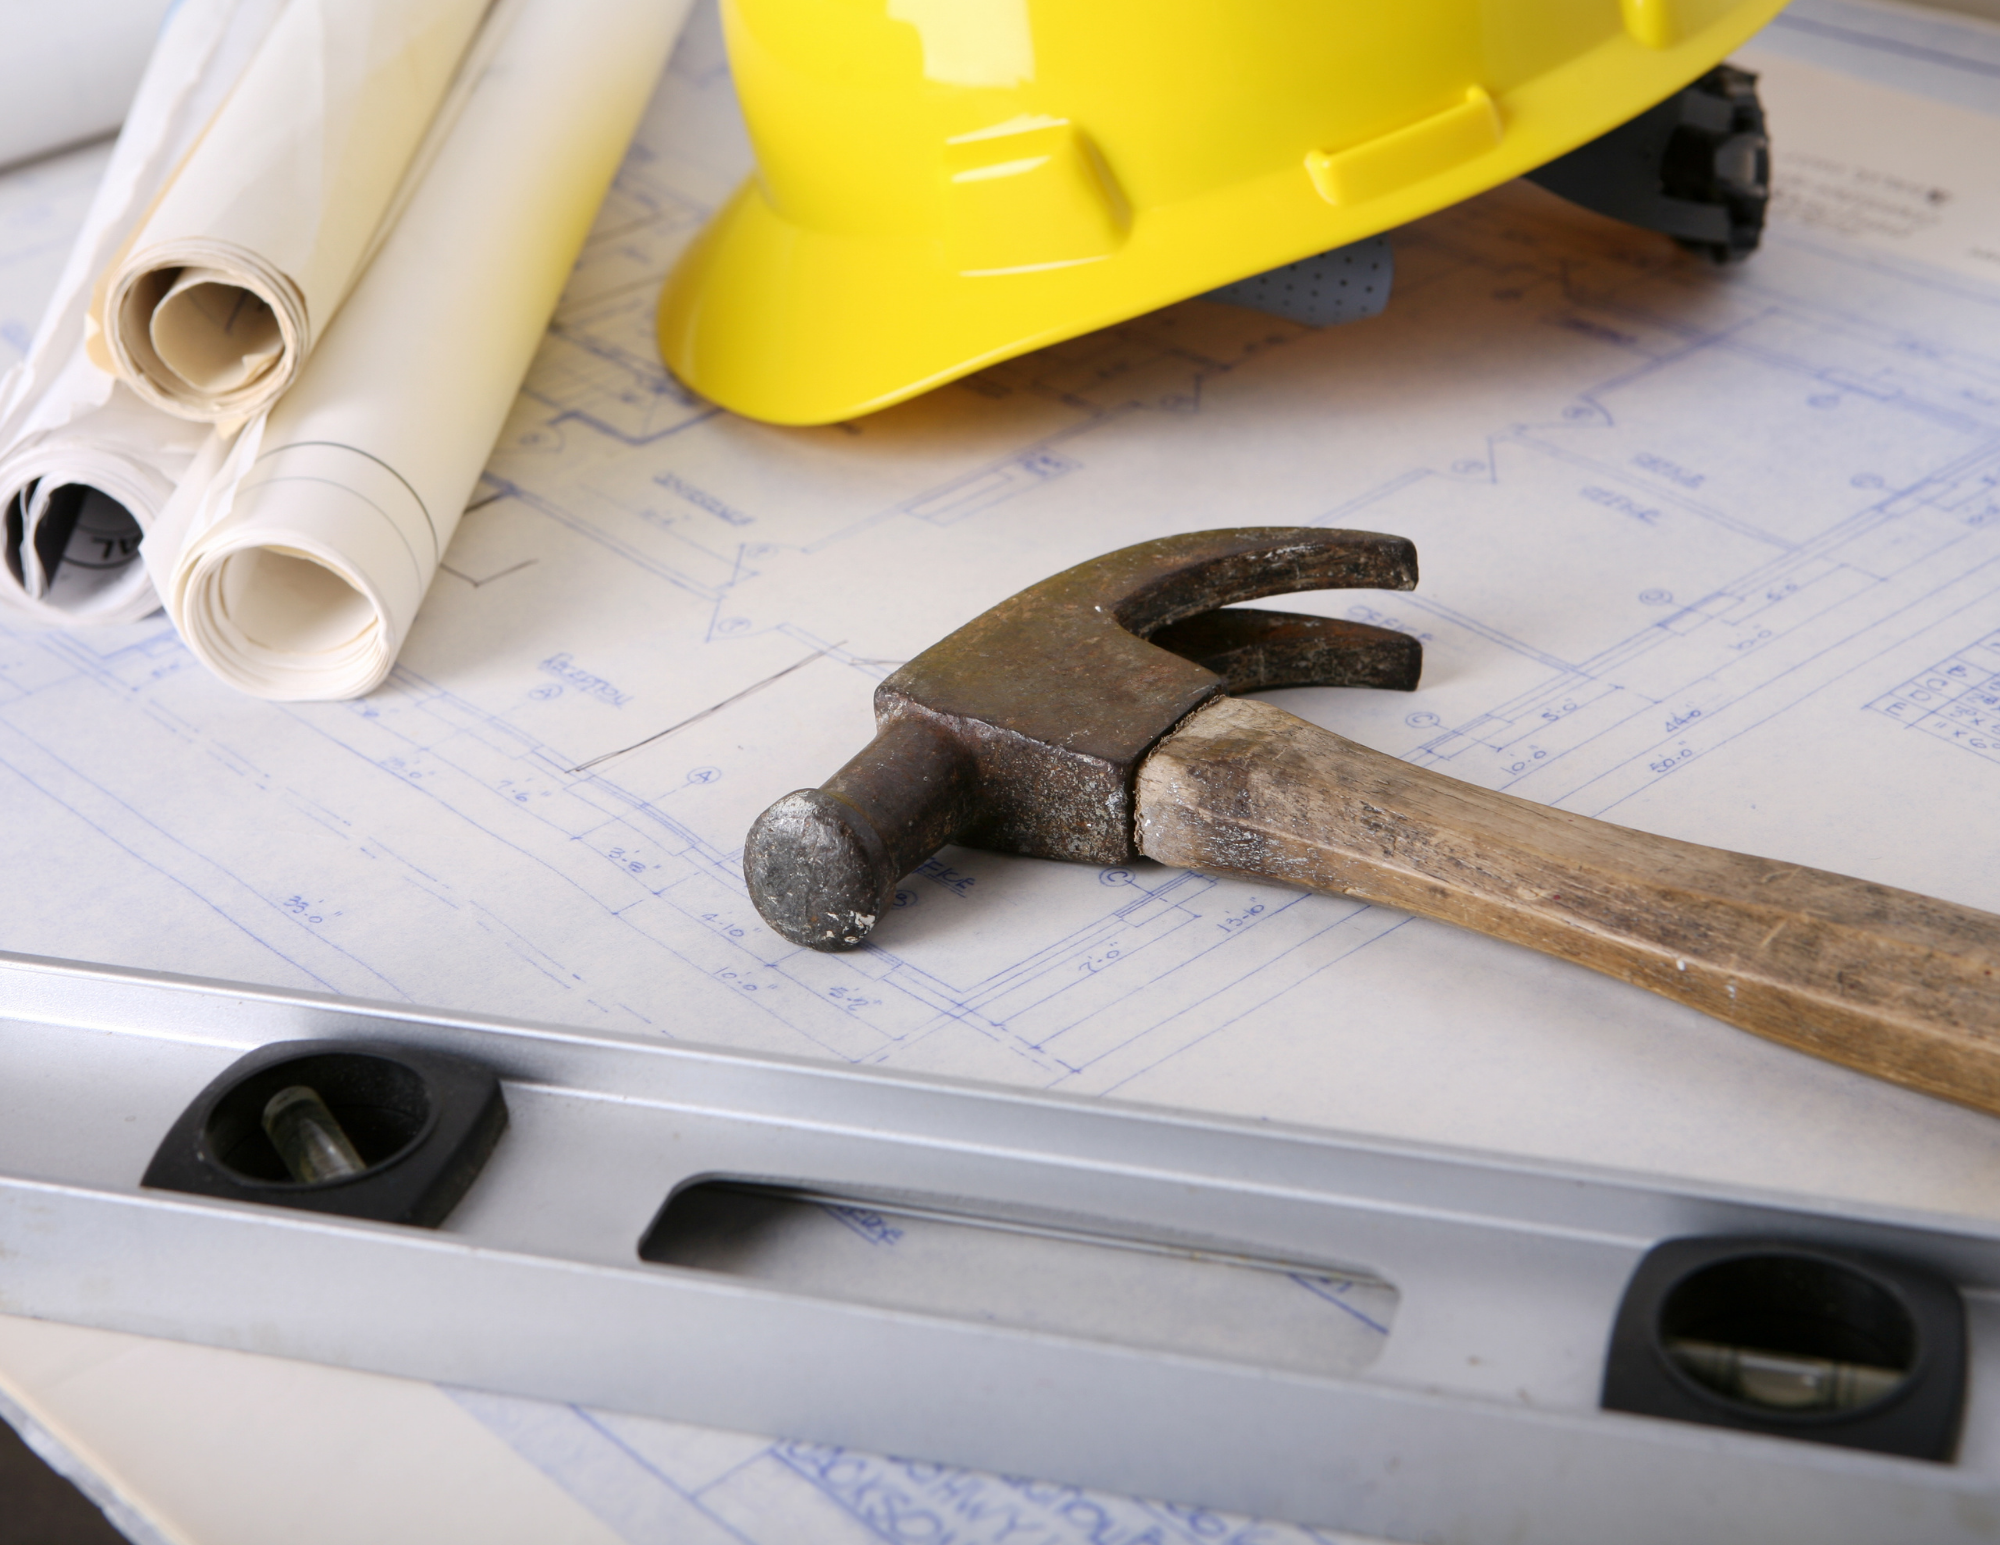 what to expect during construction shows tools, hard hat and blueprints